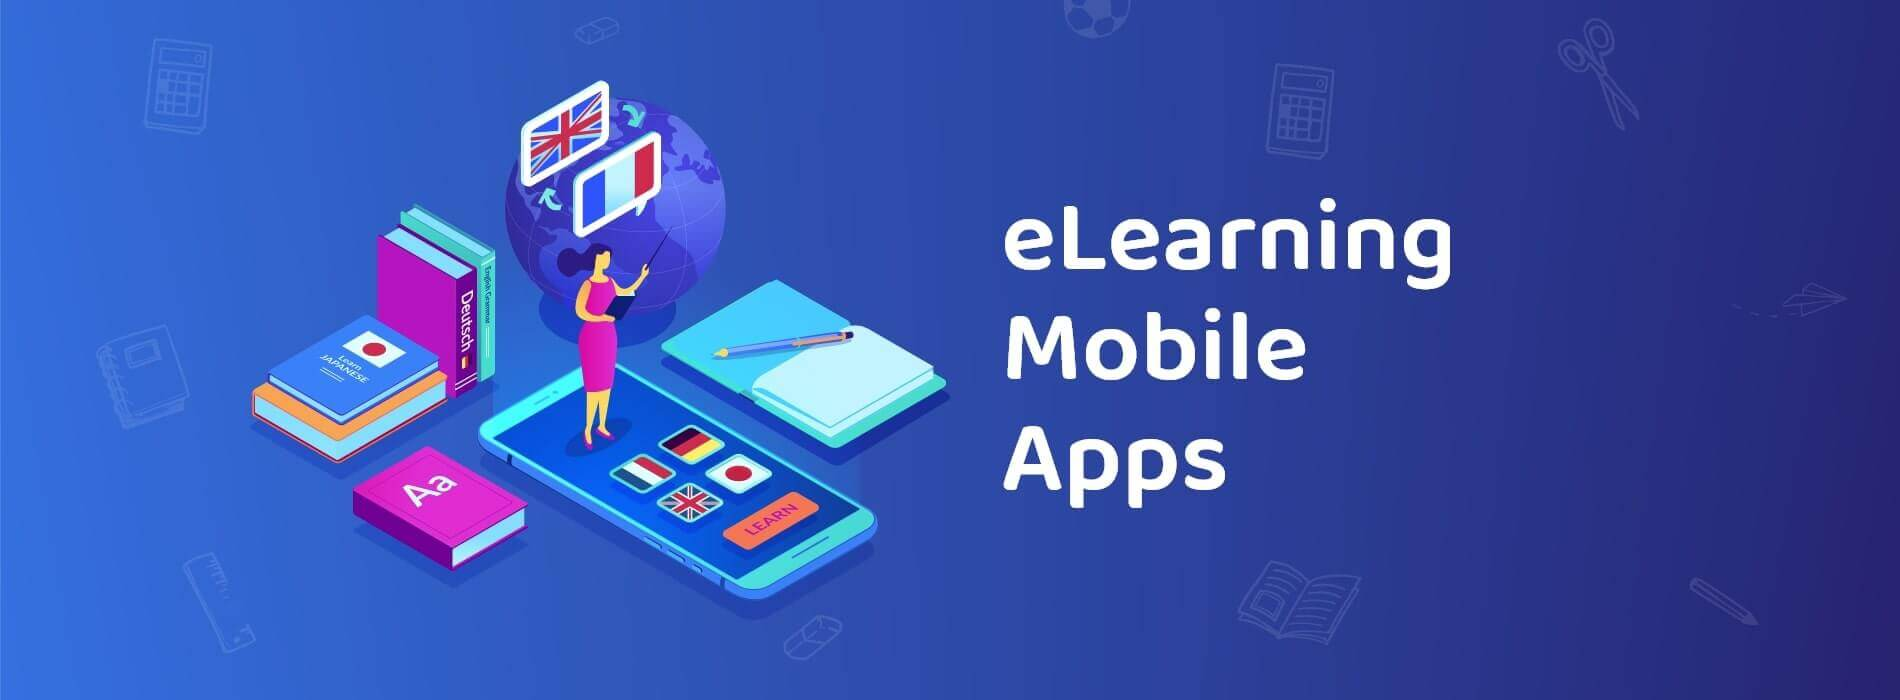 How eLearning Mobile Apps Are Transforming Education Industry?